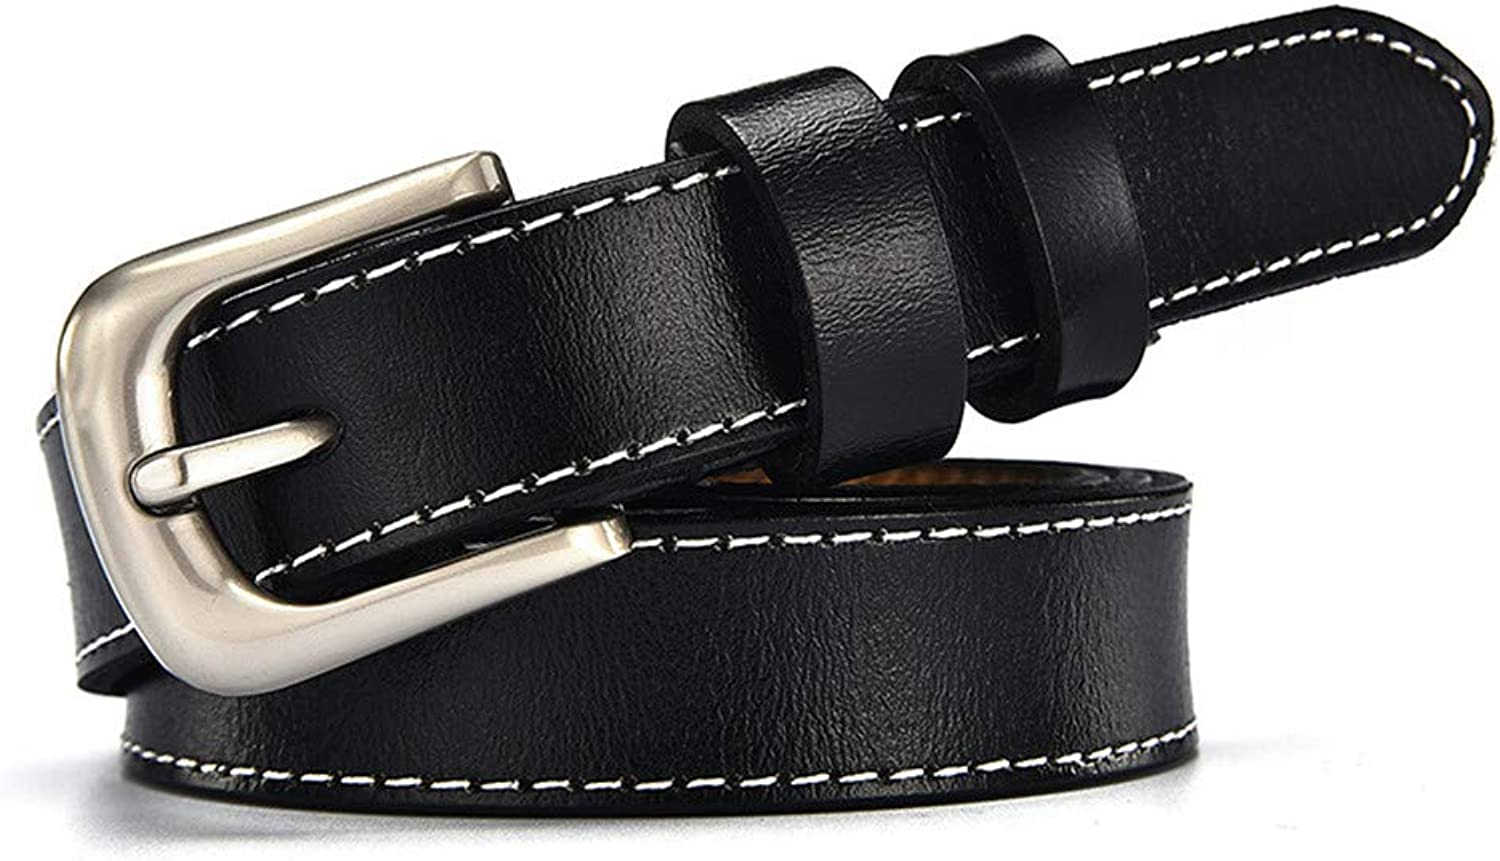 Women's Belts, Thin Belts, Decorative Skirts and Belts.black105CM